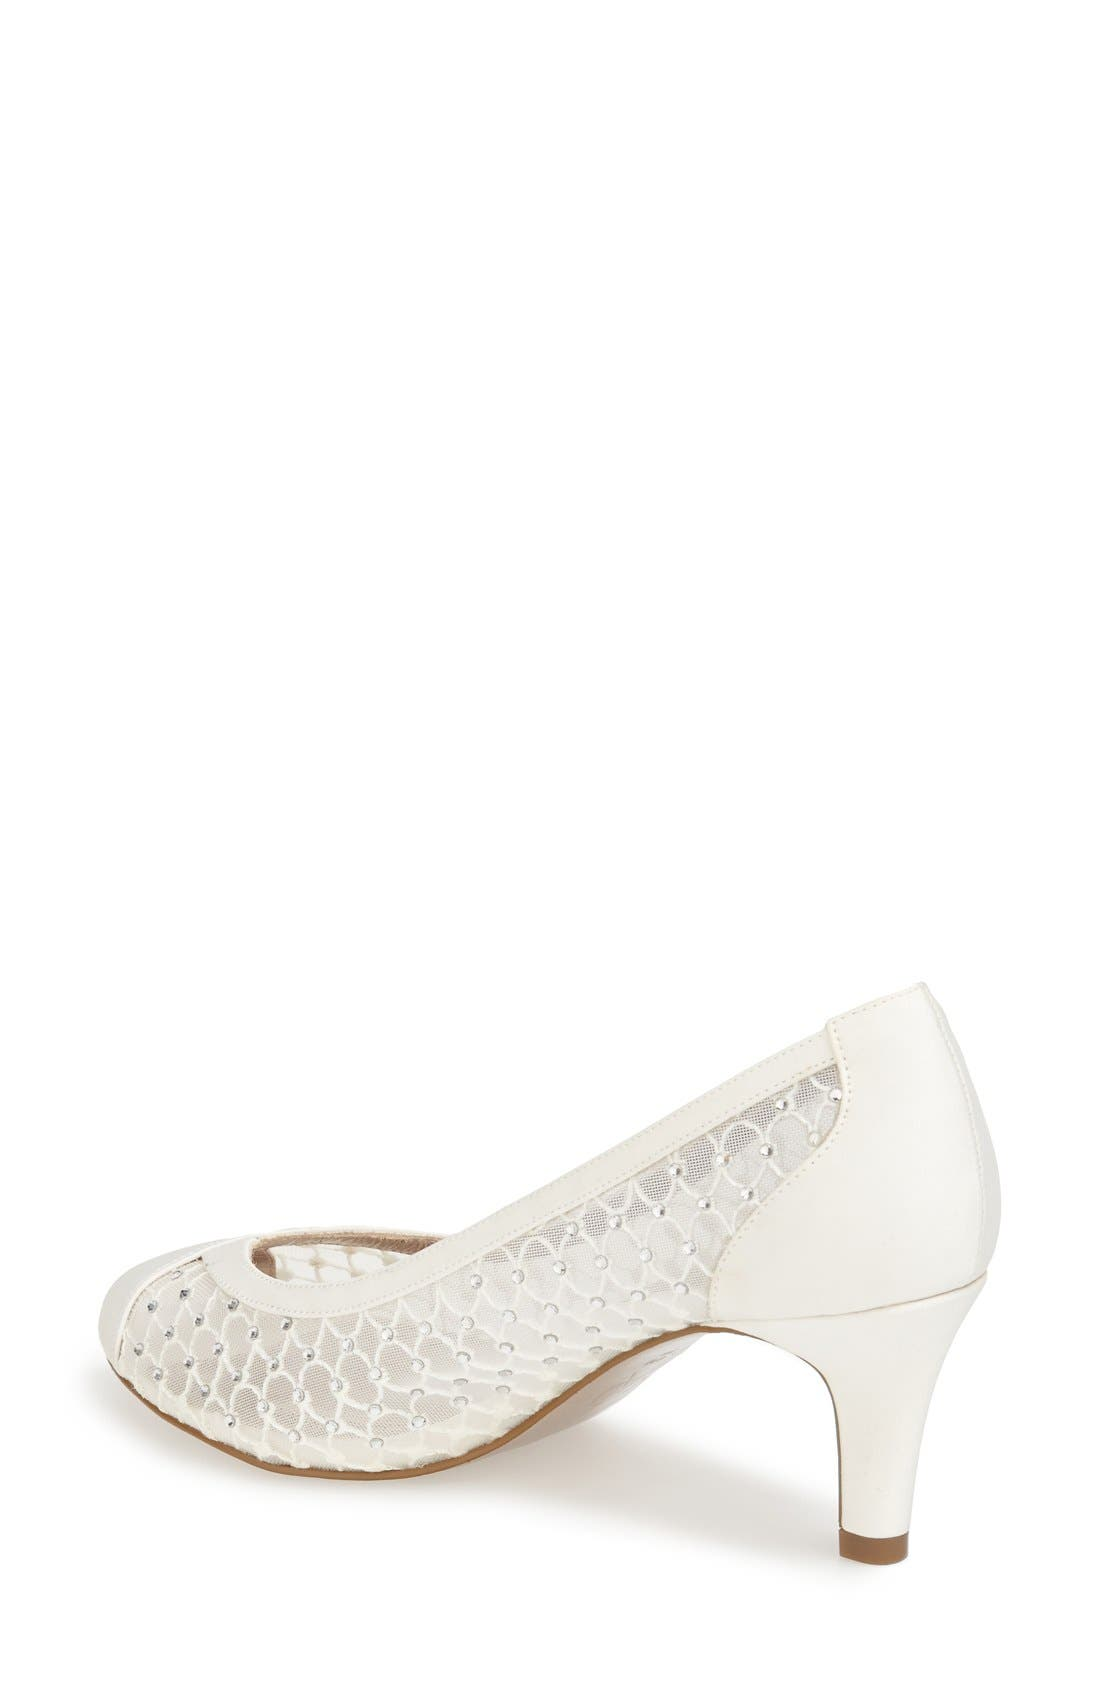 'Zandra' Crystal Embellished Peep Toe Pump,                             Alternate thumbnail 2, color,                             Ivory Faille